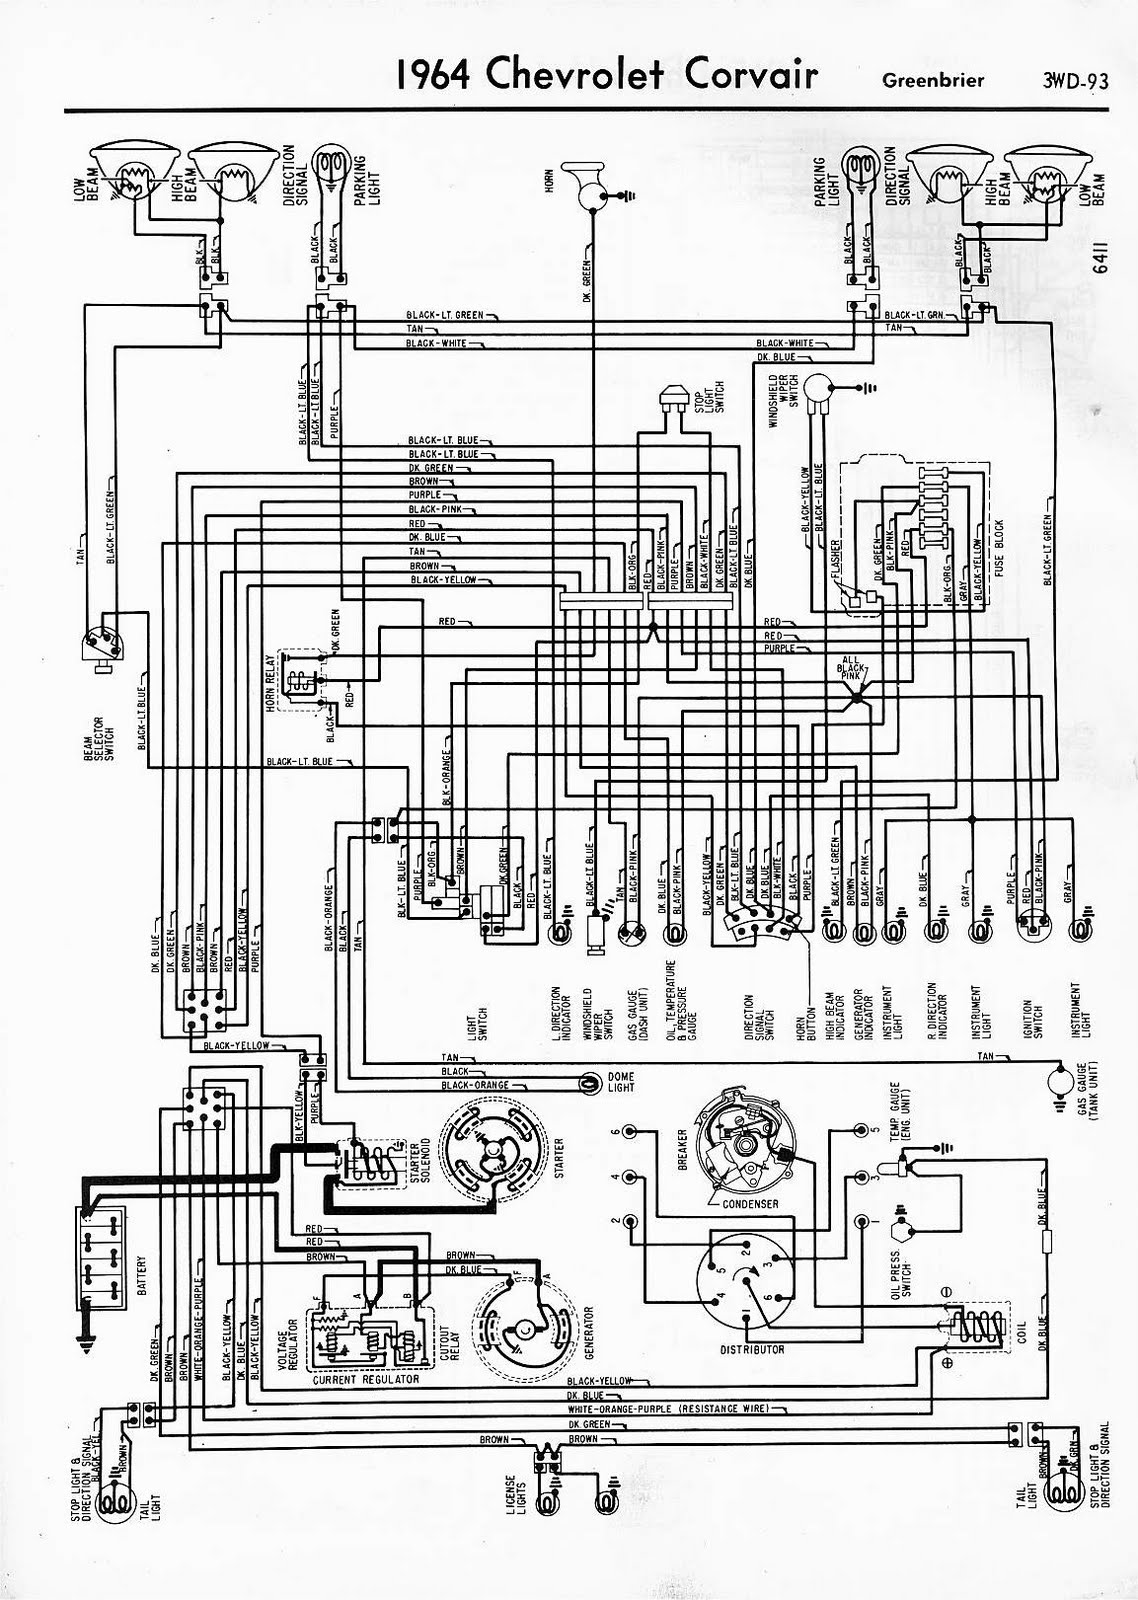 small resolution of 63 corvair wiring diagram wiring diagrams long63 corvair wiring diagram wiring diagram blog 63 corvair wiring